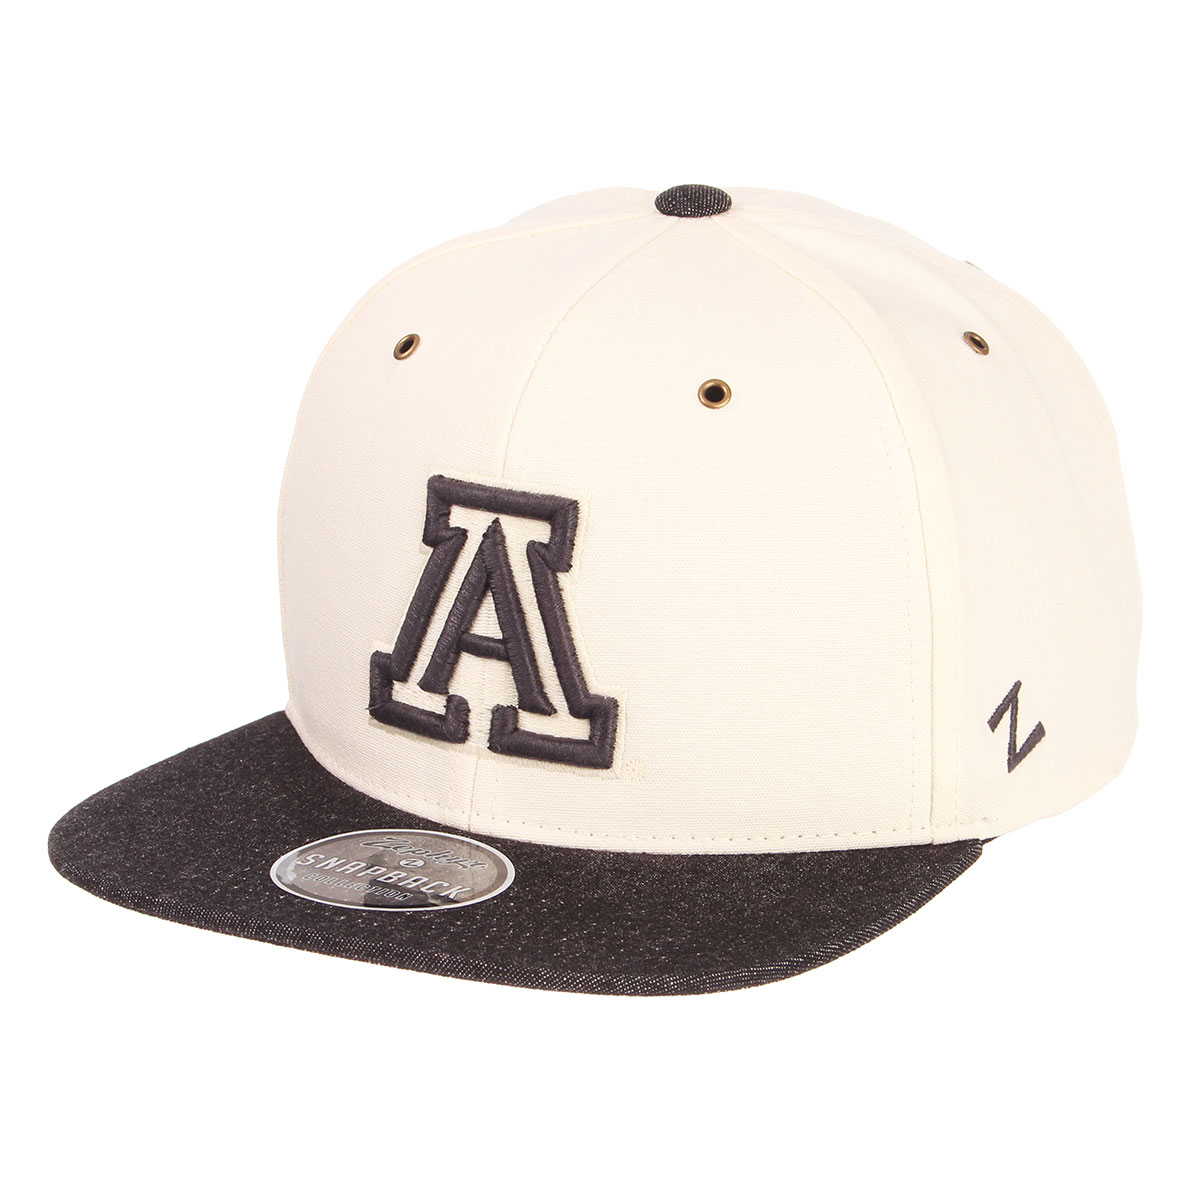 11f56856189 Image For Zephyr  Arizona 32 5 Snapback Canvas Flat Bill Hat Cap